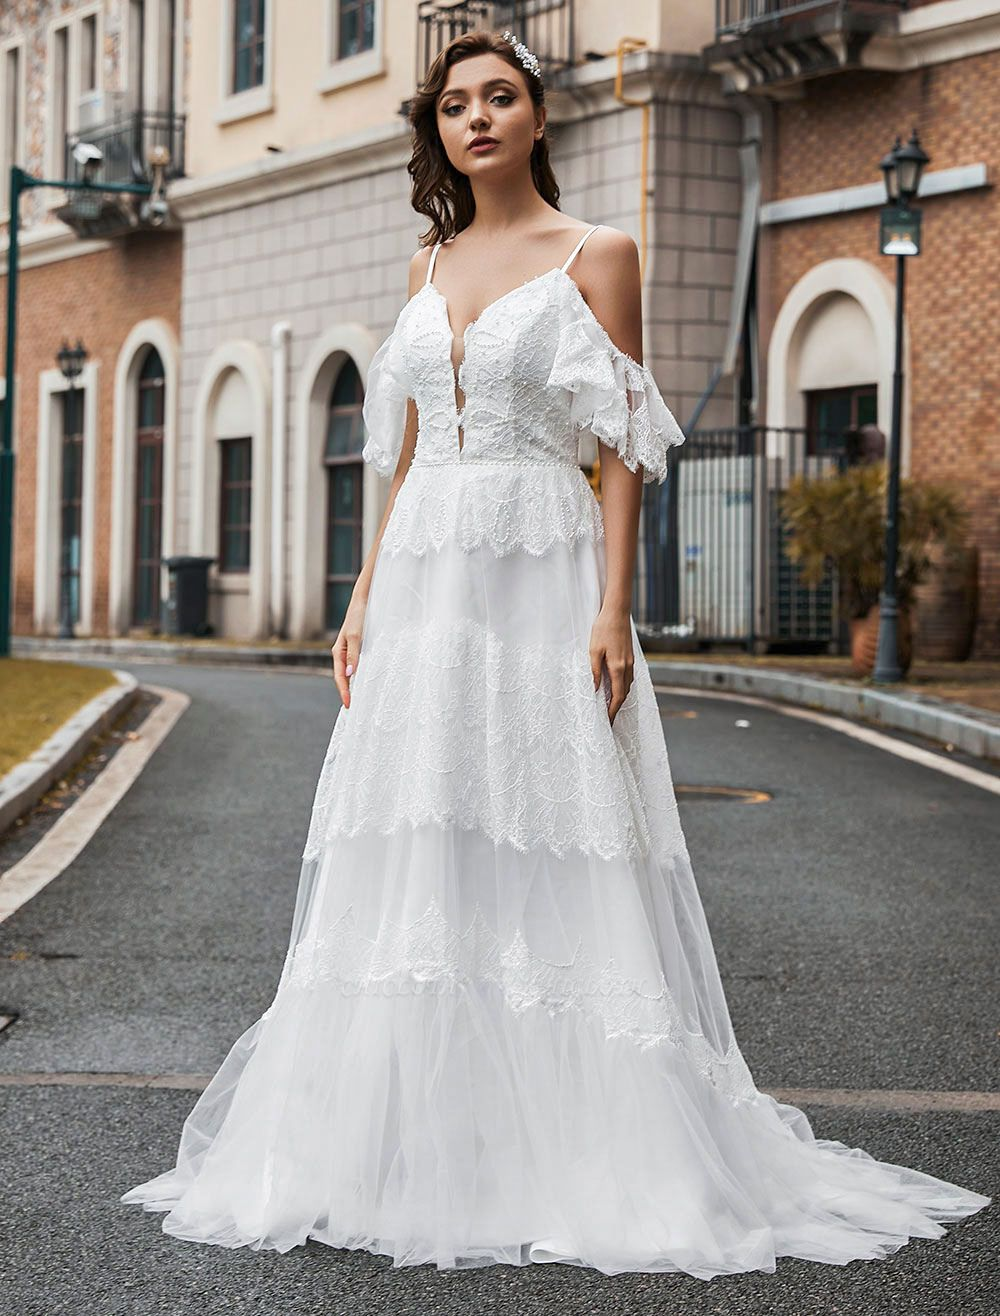 Boho Wedding Gowns Lace A-Line V-Neck Natural Waistline Beaded Wedding Gown